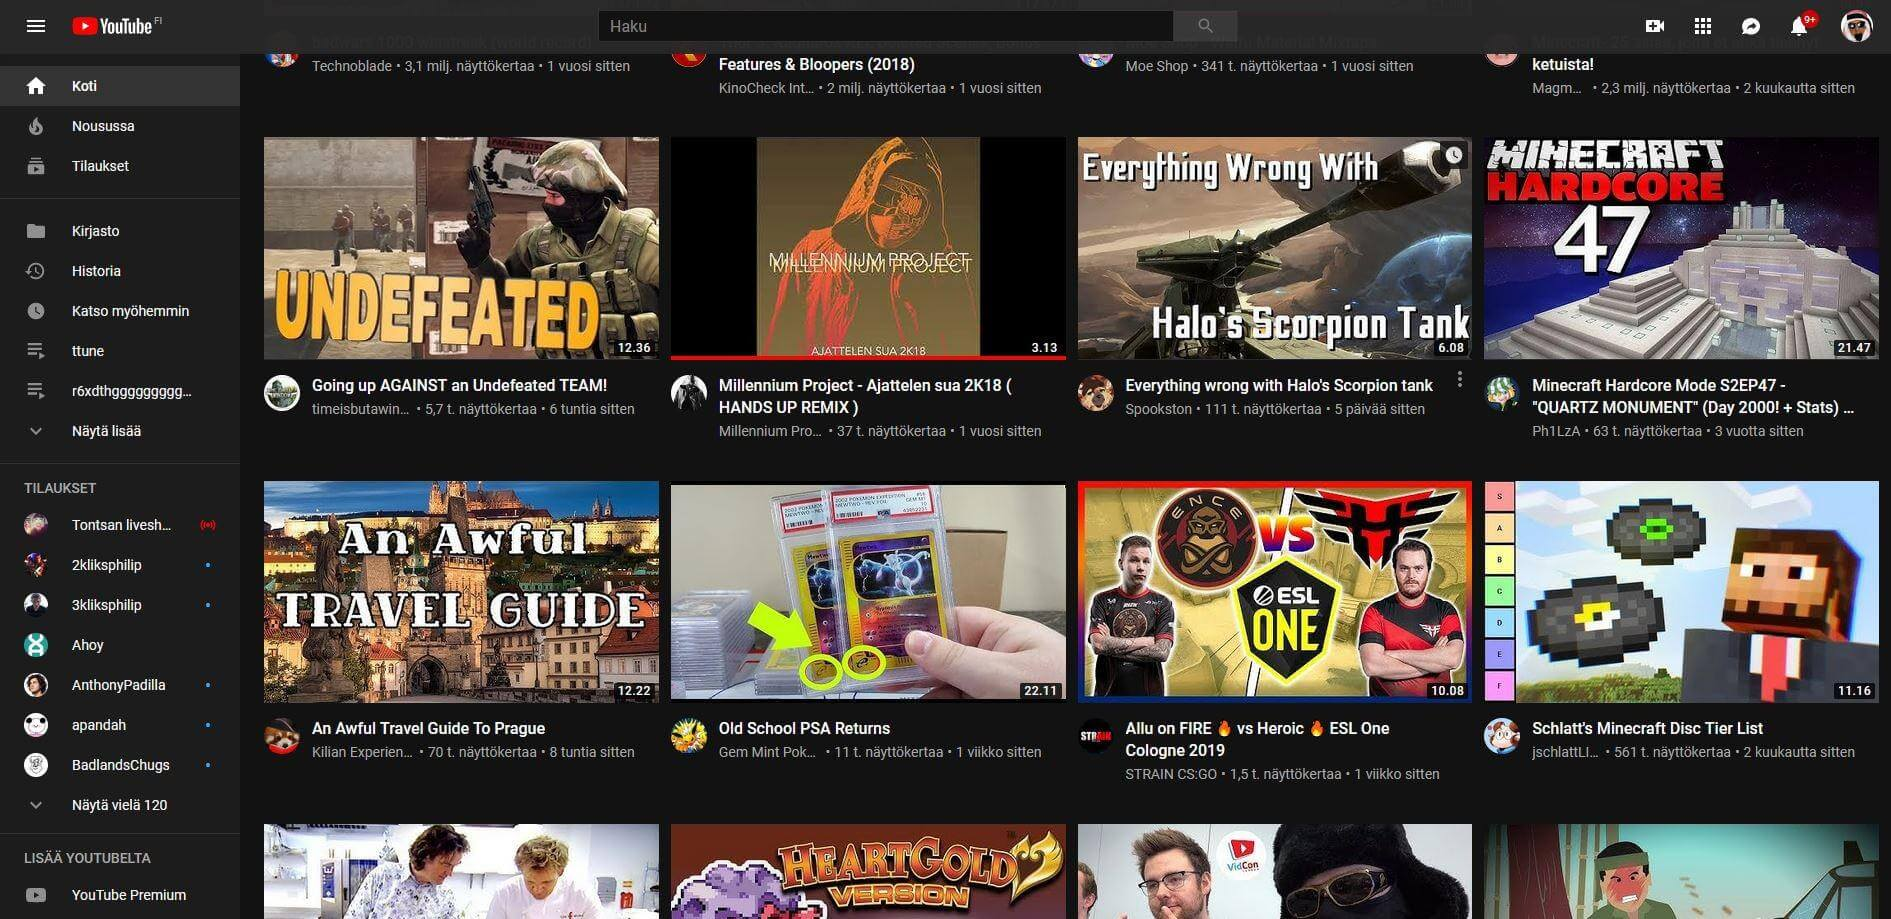 The Internet reacts: YouTube's big thumbnail layout looks horrible